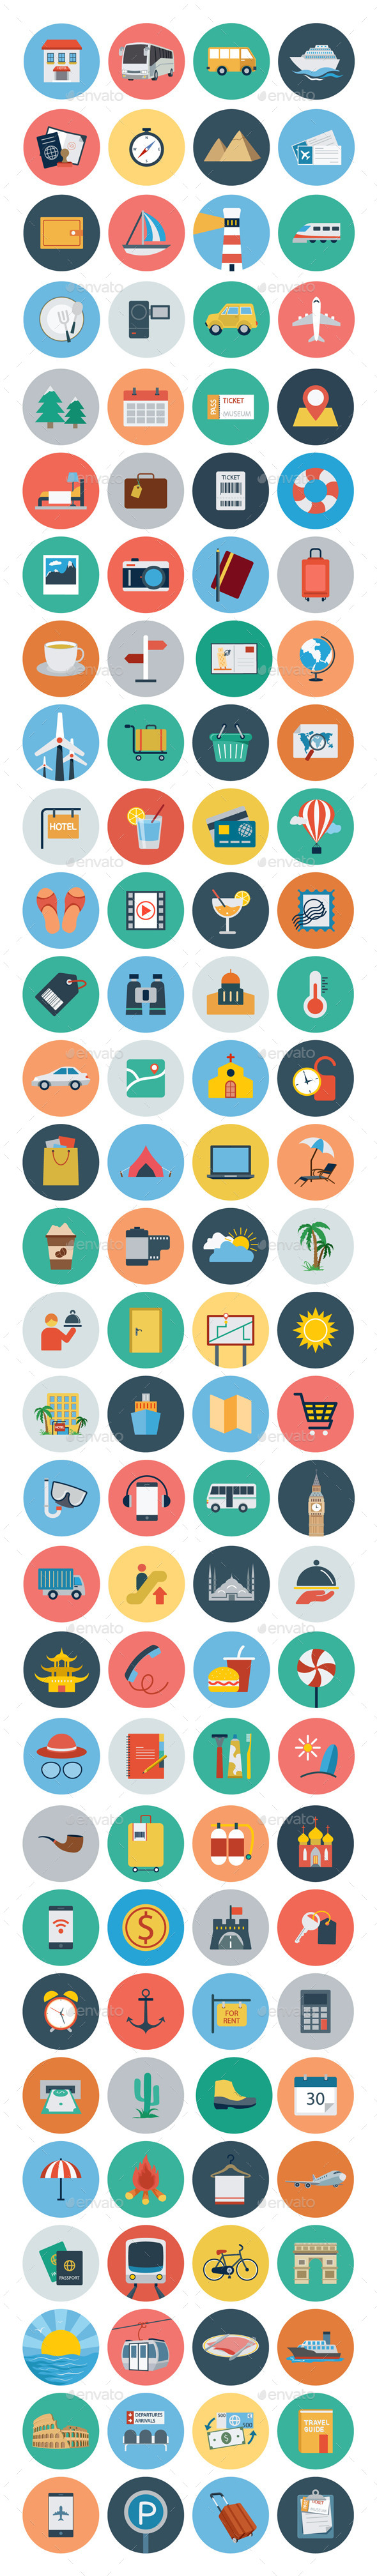 GraphicRiver 120 Travel Flat Icons 10453857